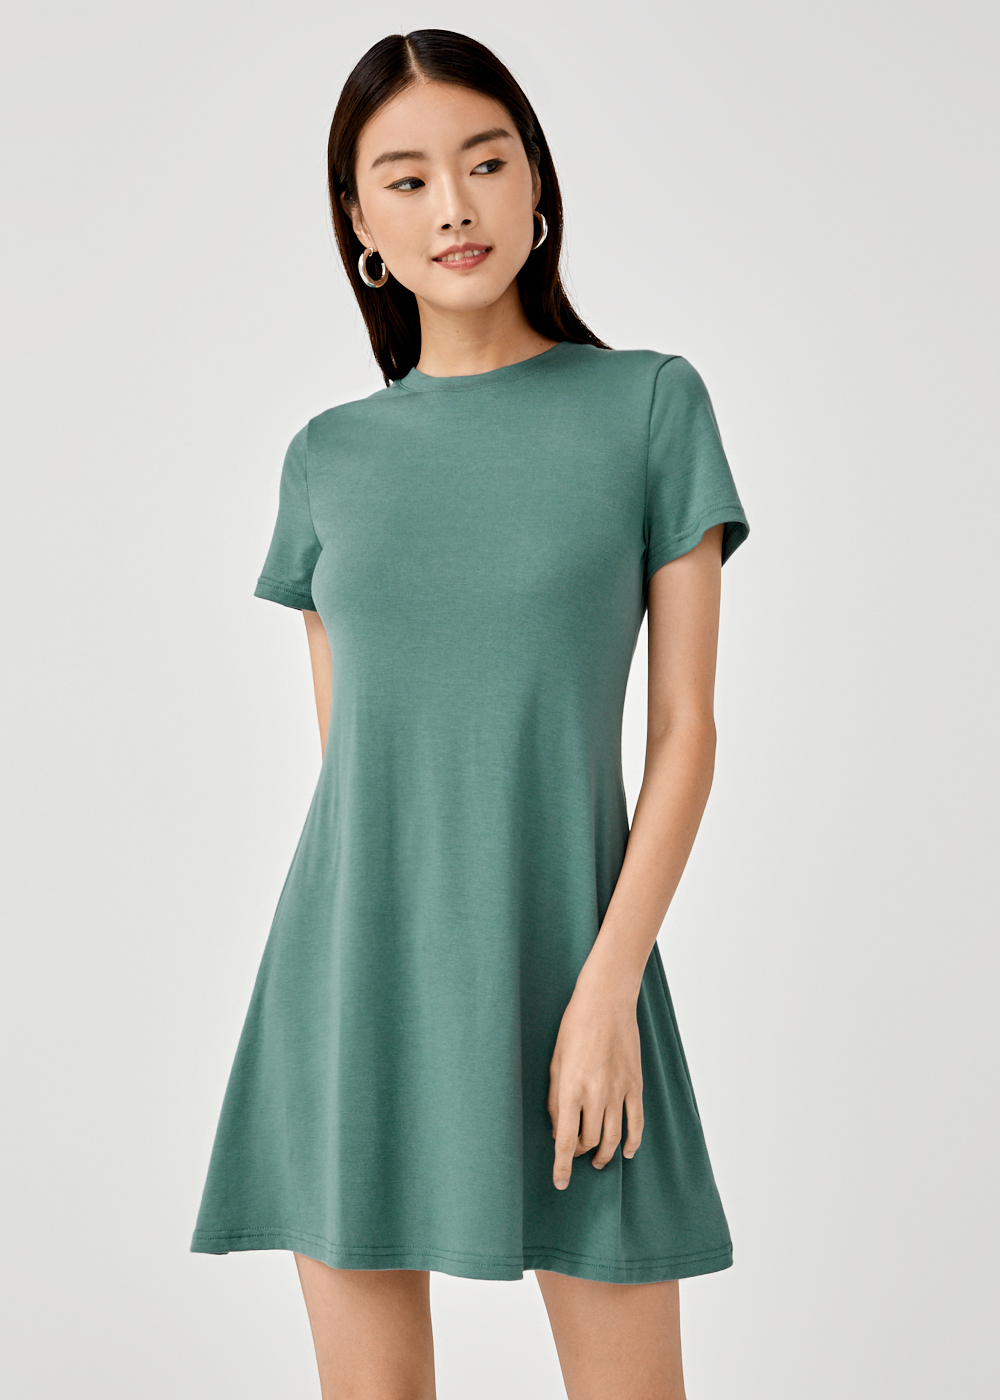 Eden T-shirt Dress